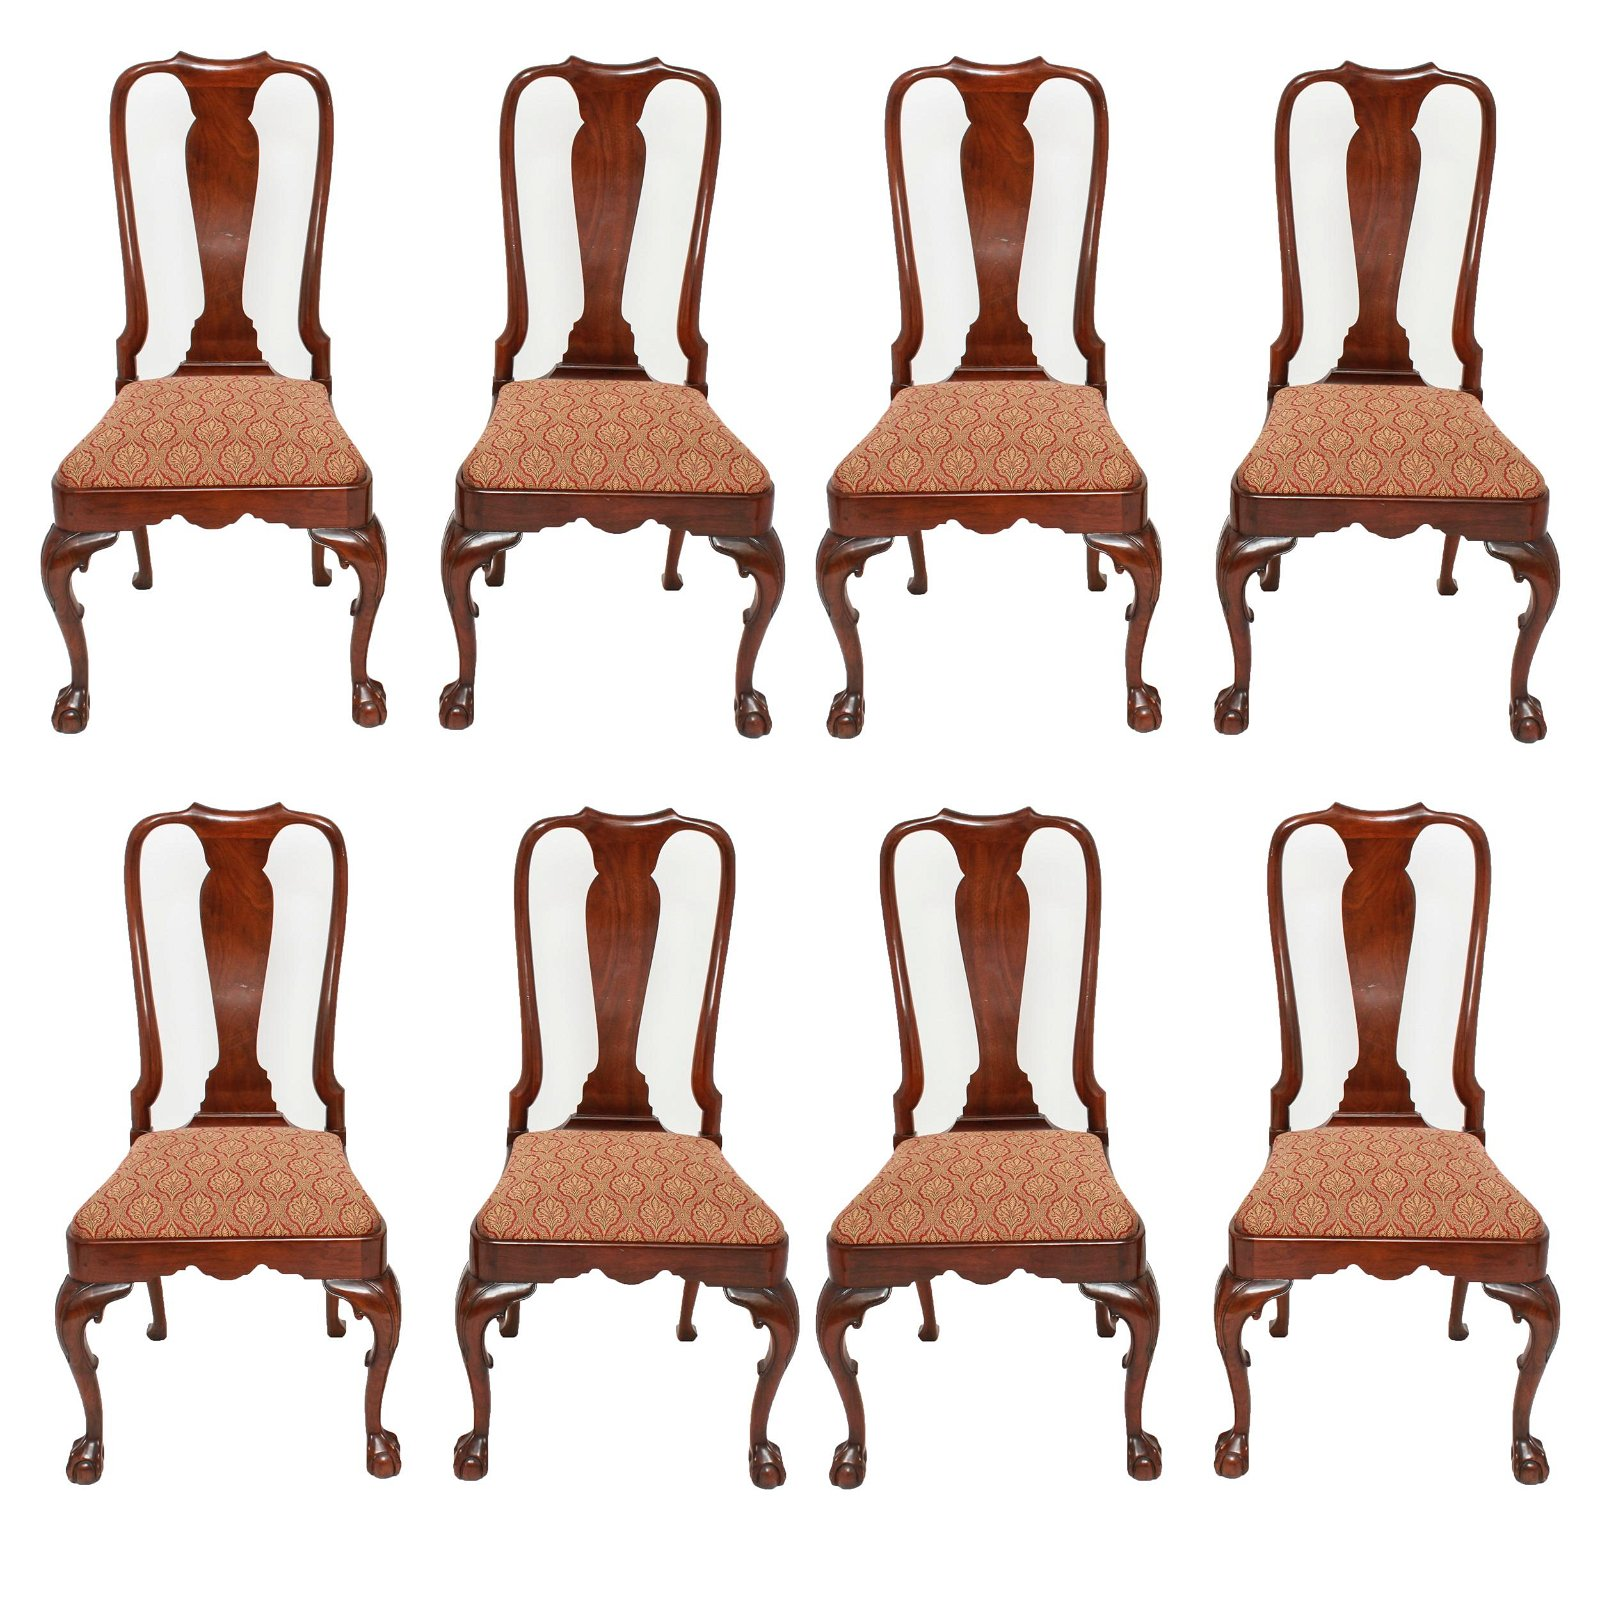 Kindel Furniture Queen Anne Style Dining Chairs, 8